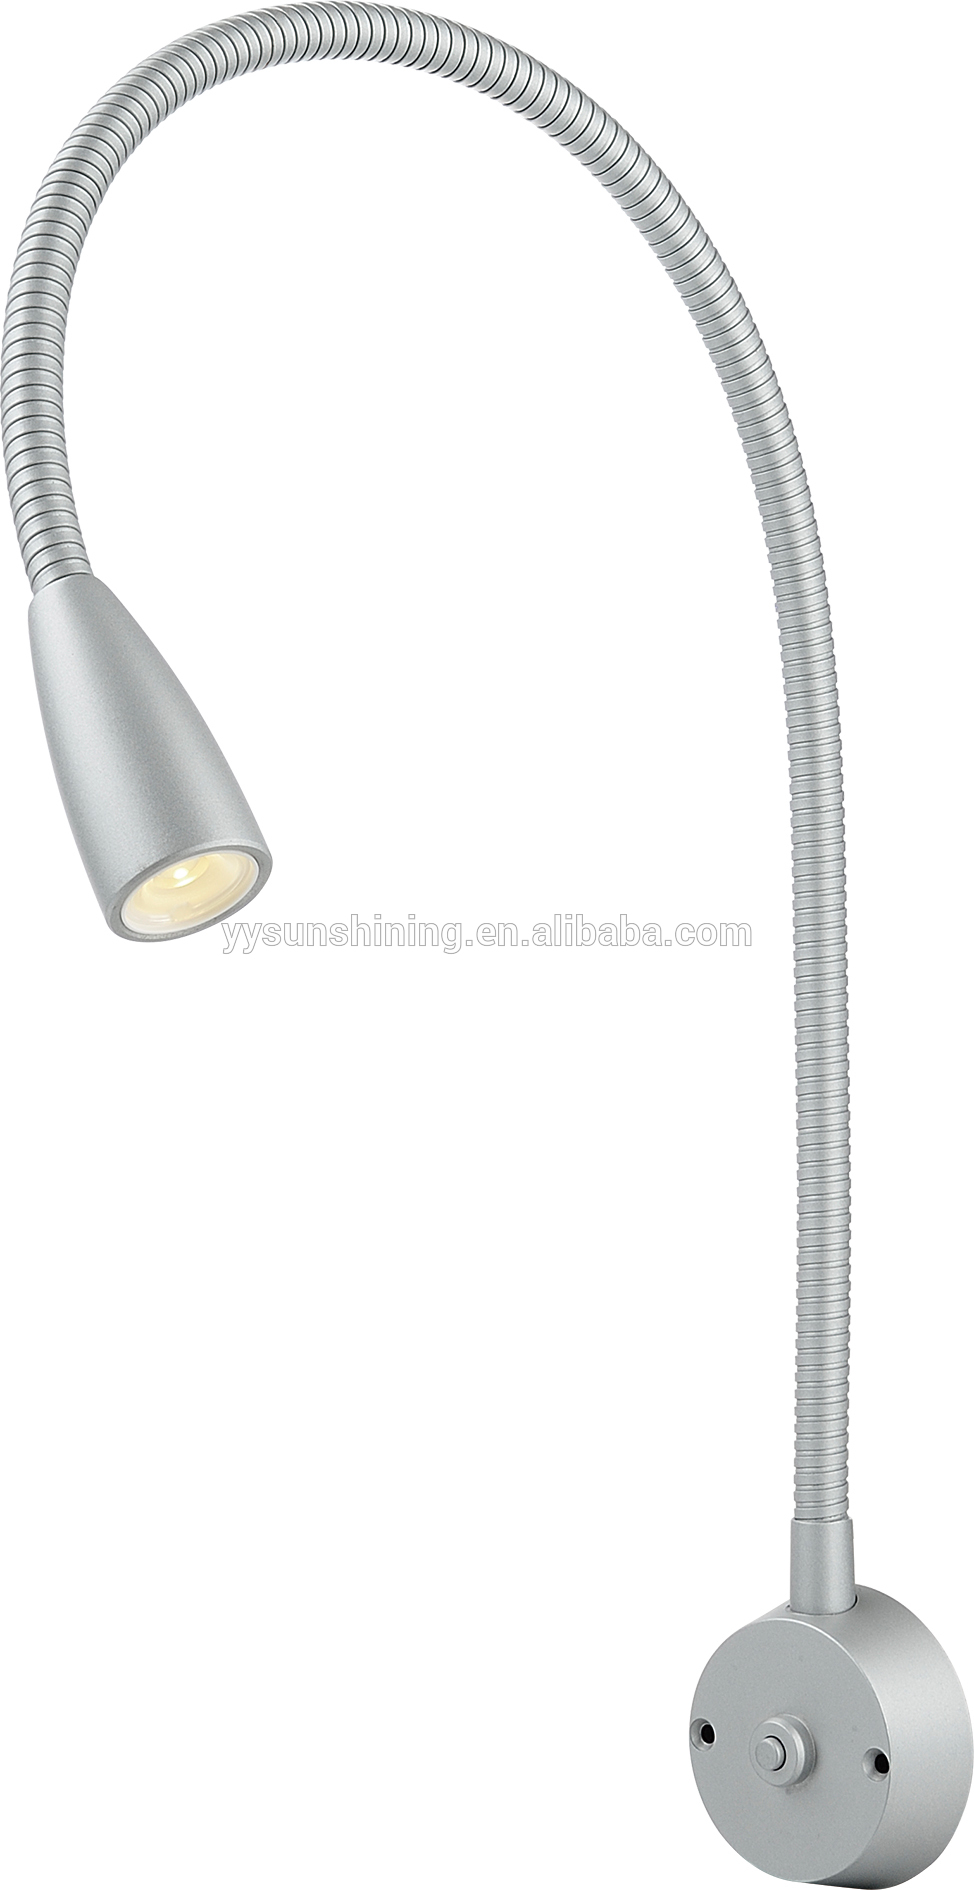 lampe de chevet flexible lecture